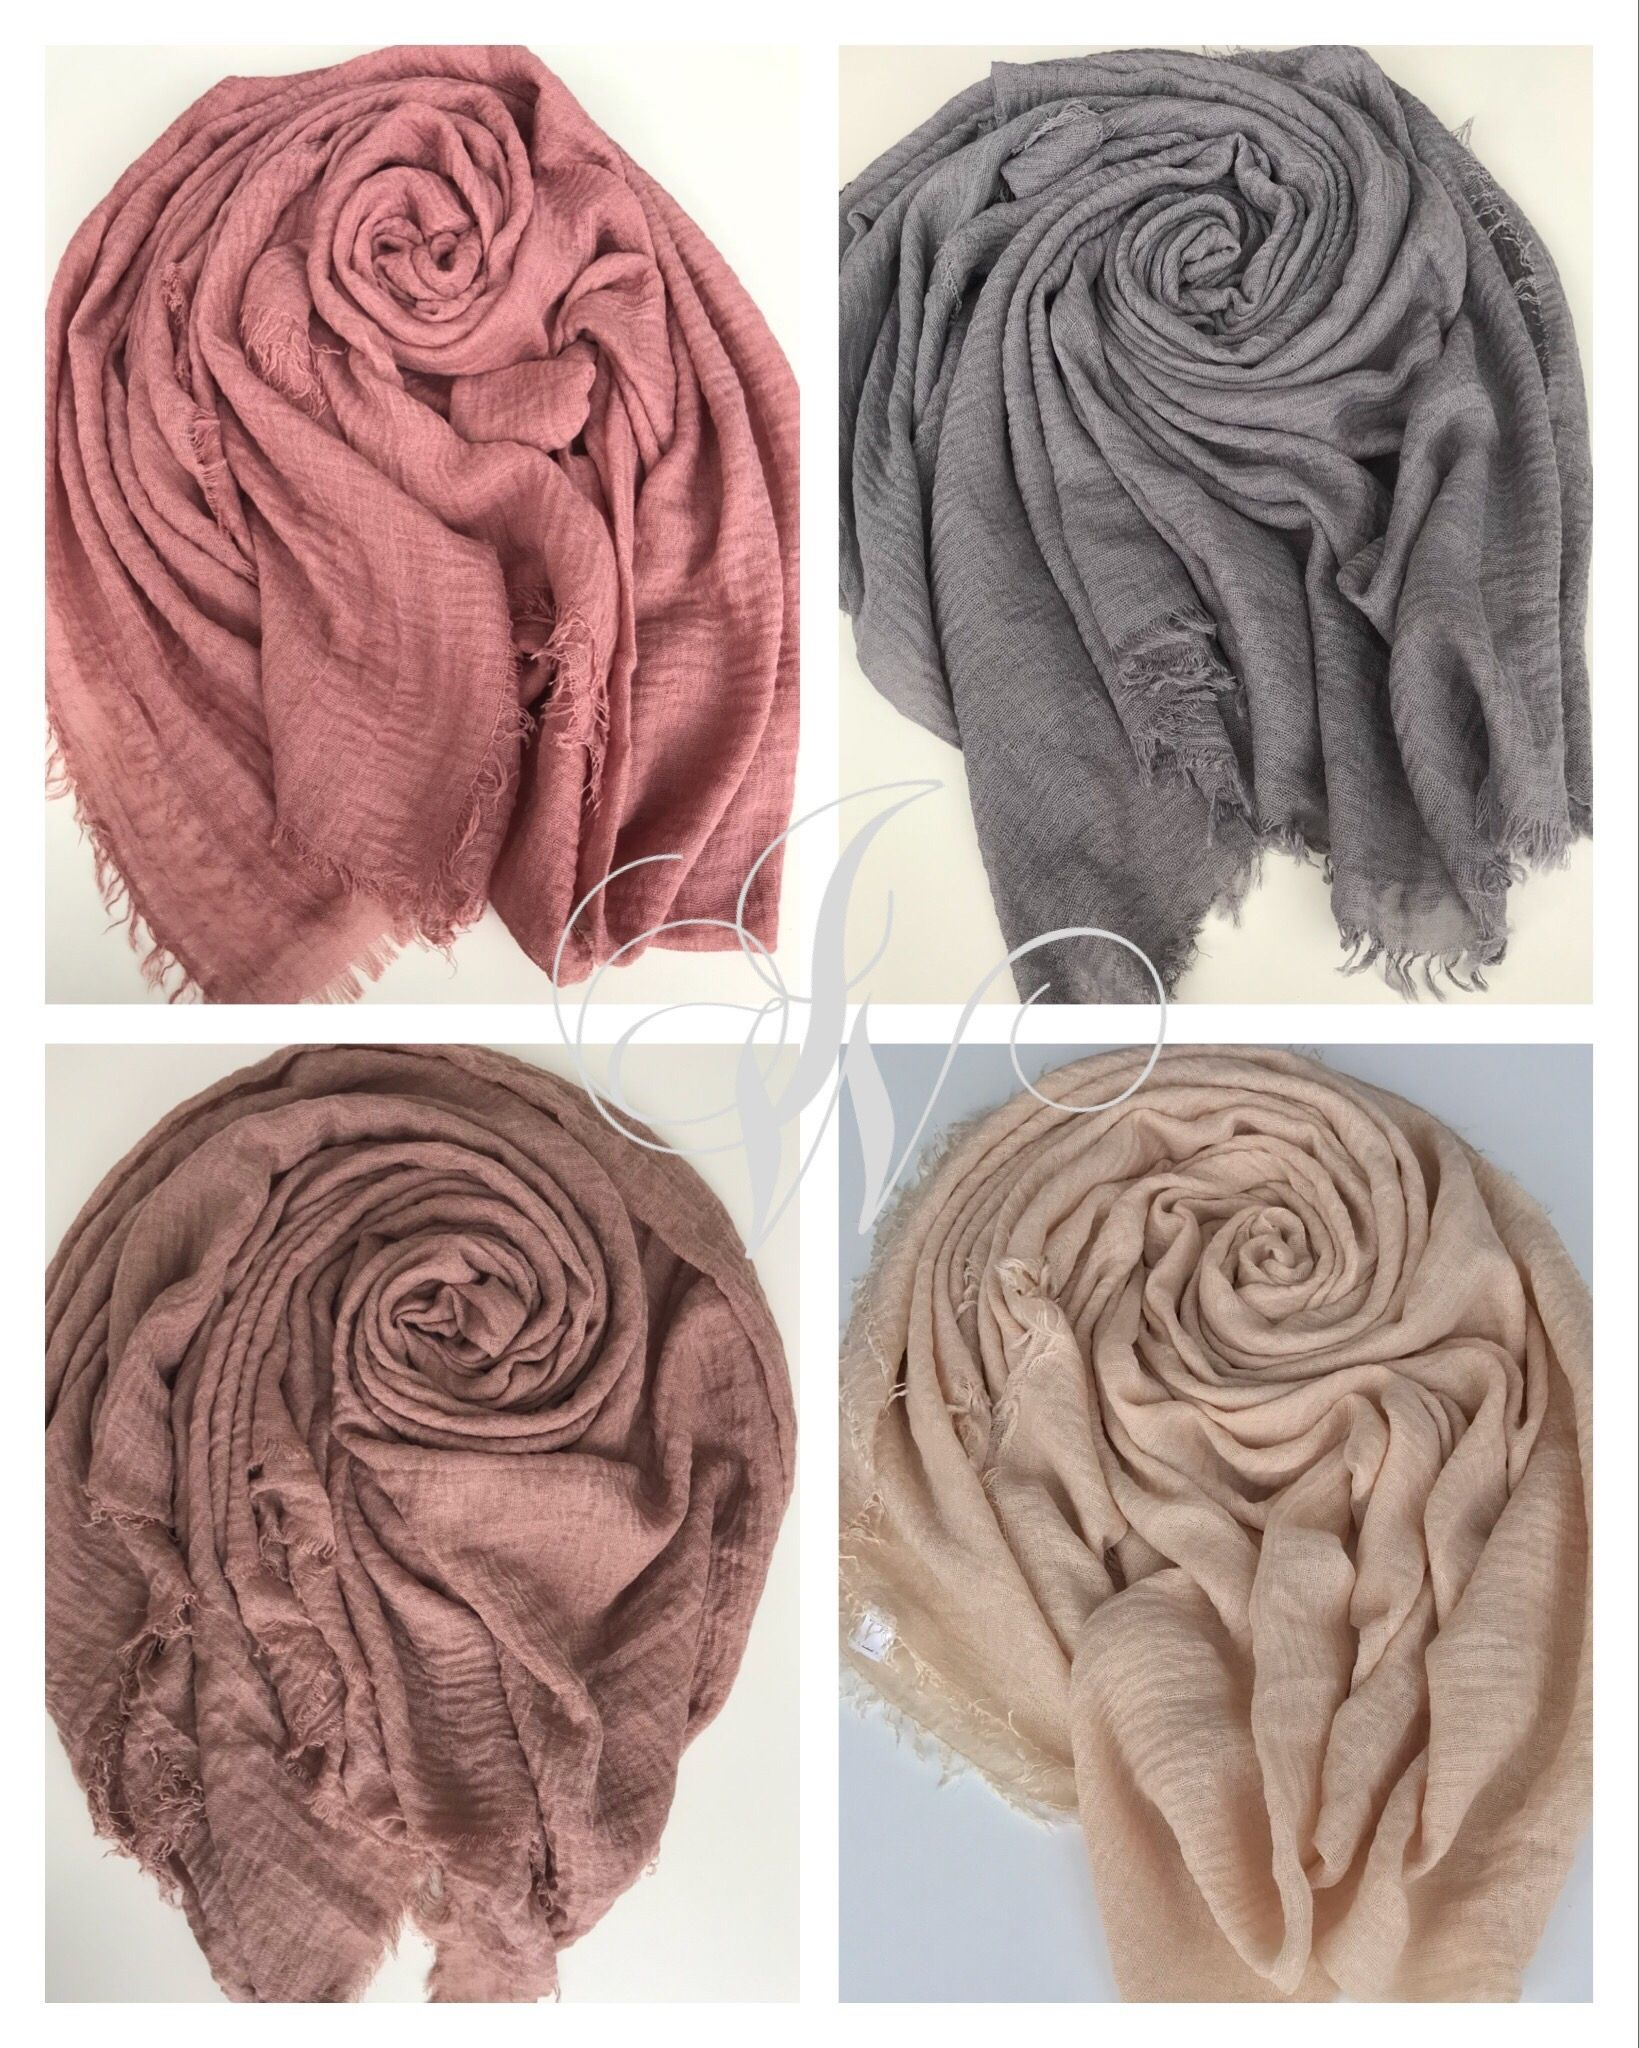 NEW PLAIN MAXI SCARF HIJAB SOFT  VISCOSE//C0TTON RAYON SHAWL SARONG WRAP LADIES